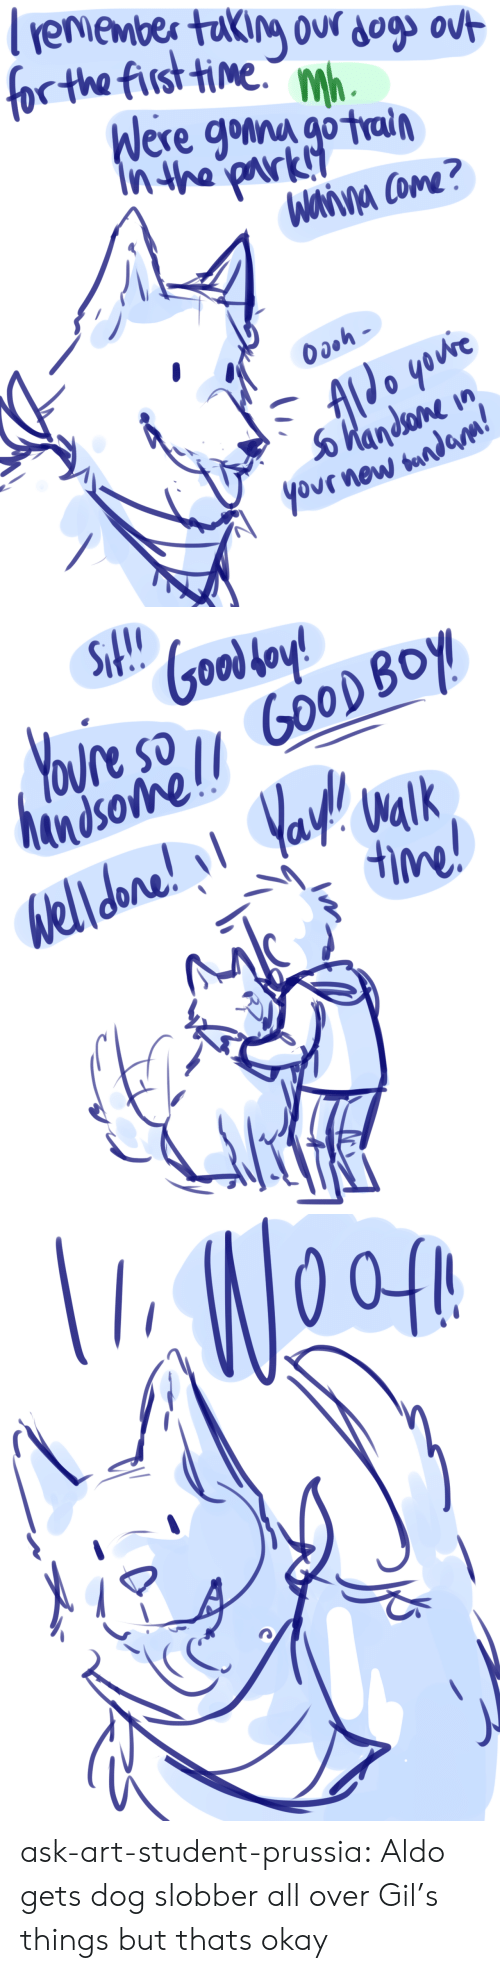 Target, Tumblr, and Blog: for tha tvistie.M  Were gomna go tral  tn  yovr new   sti, Gooley   04  0 ask-art-student-prussia:  Aldo gets dog slobber all over Gil's things but thats okay